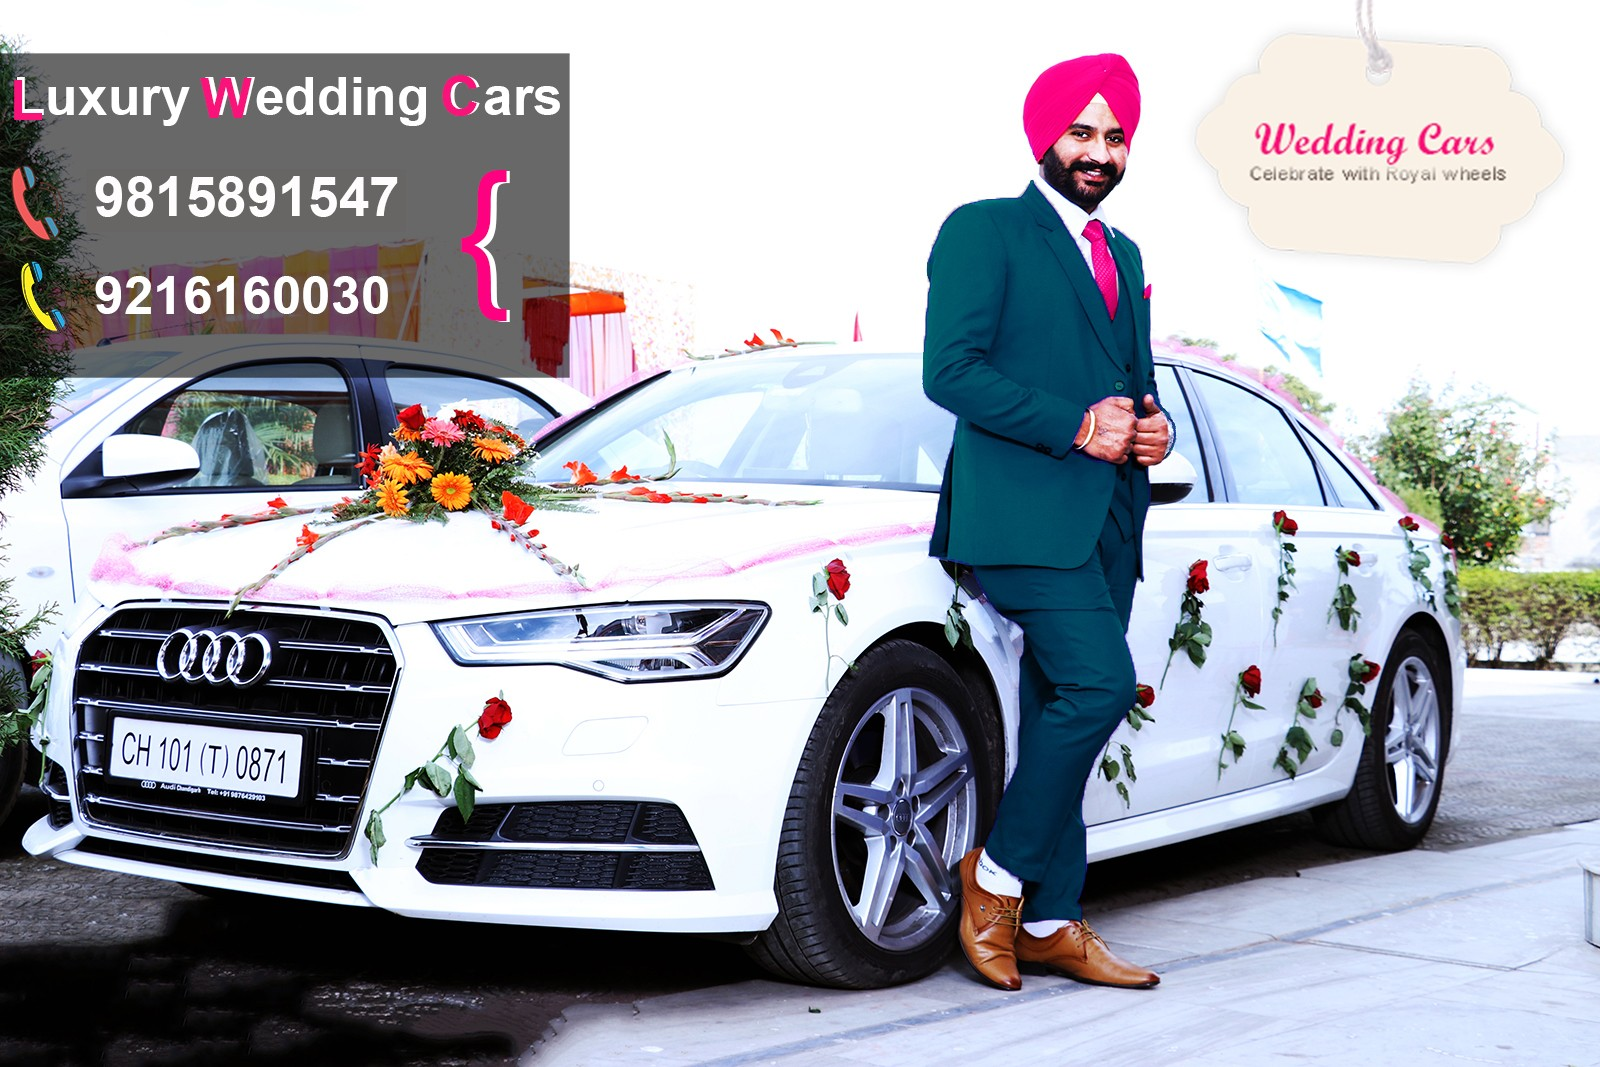 Audi Car For Wedding In Punjab Audi Hire For Wedding Wedding - Pictures of audi cars